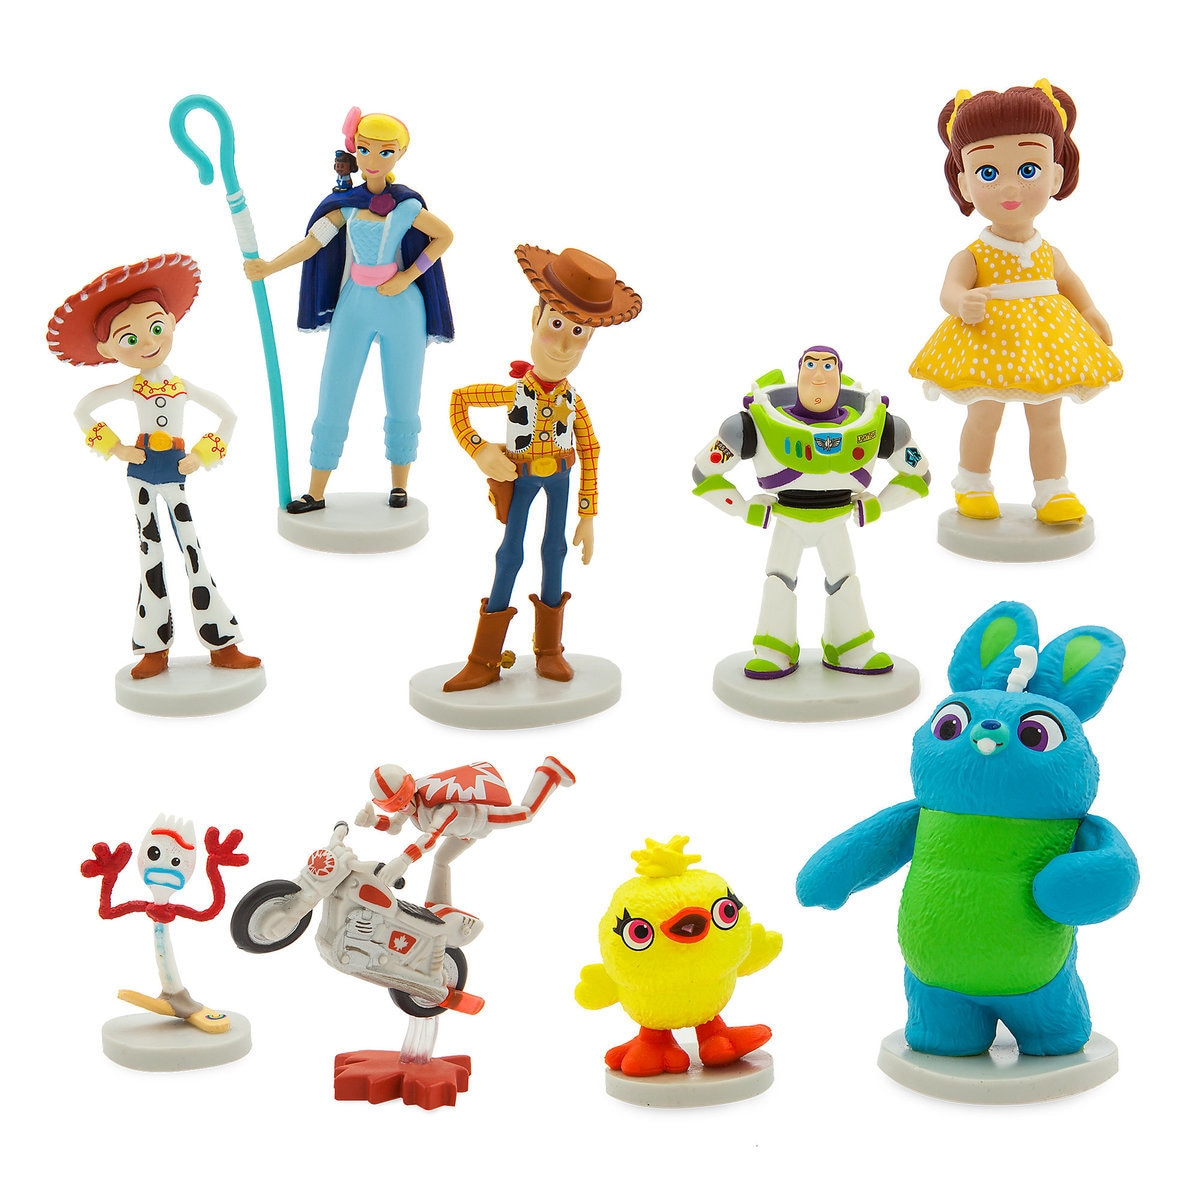 Thumbnail Image of Toy Story 4 Deluxe Figure Set # 1